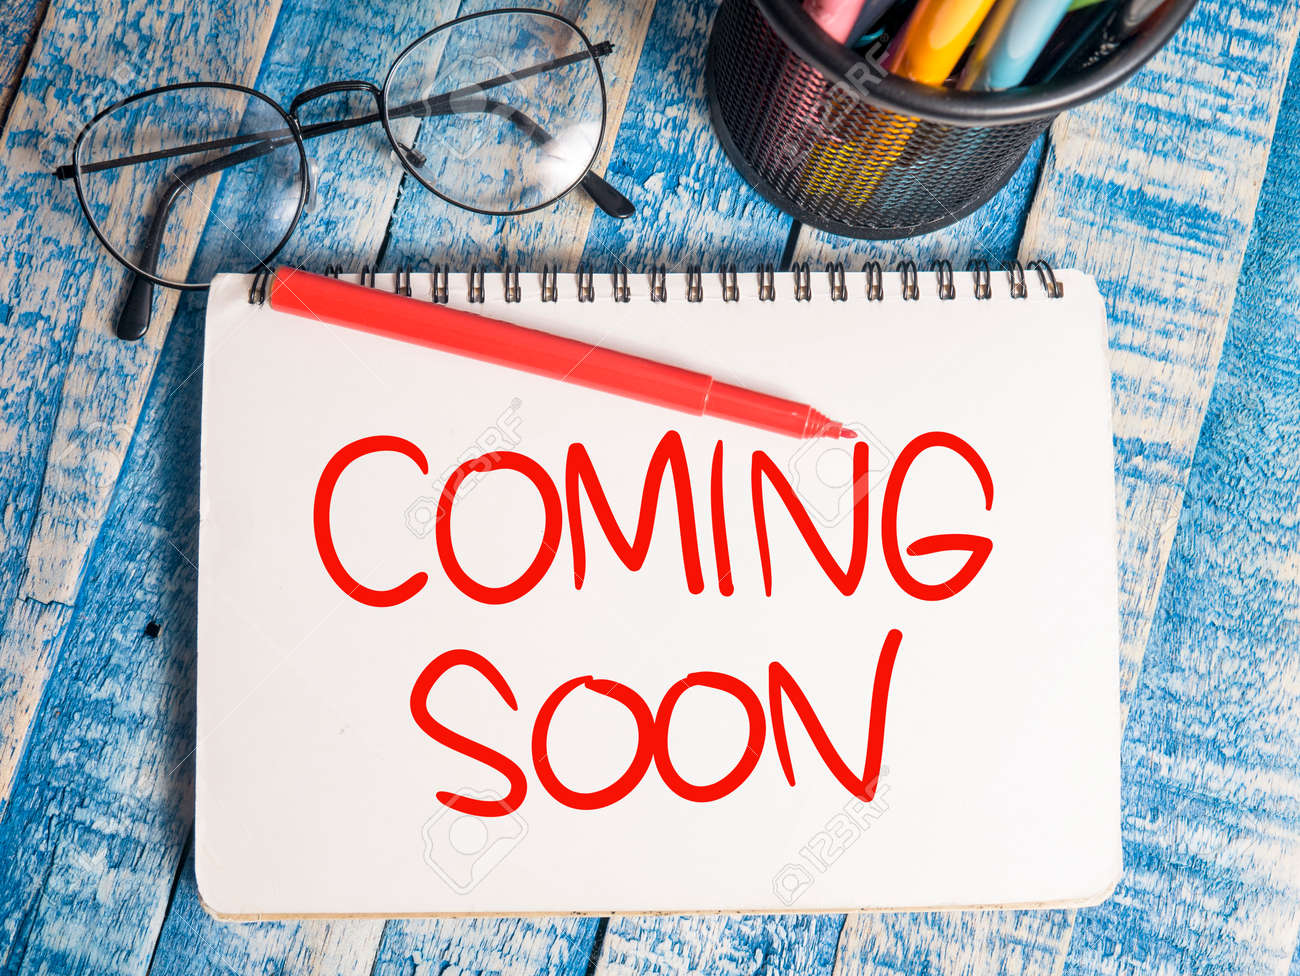 Coming Soon Motivational Inspirational Business Marketing Words Stock Photo Picture And Royalty Free Image Image 121554860